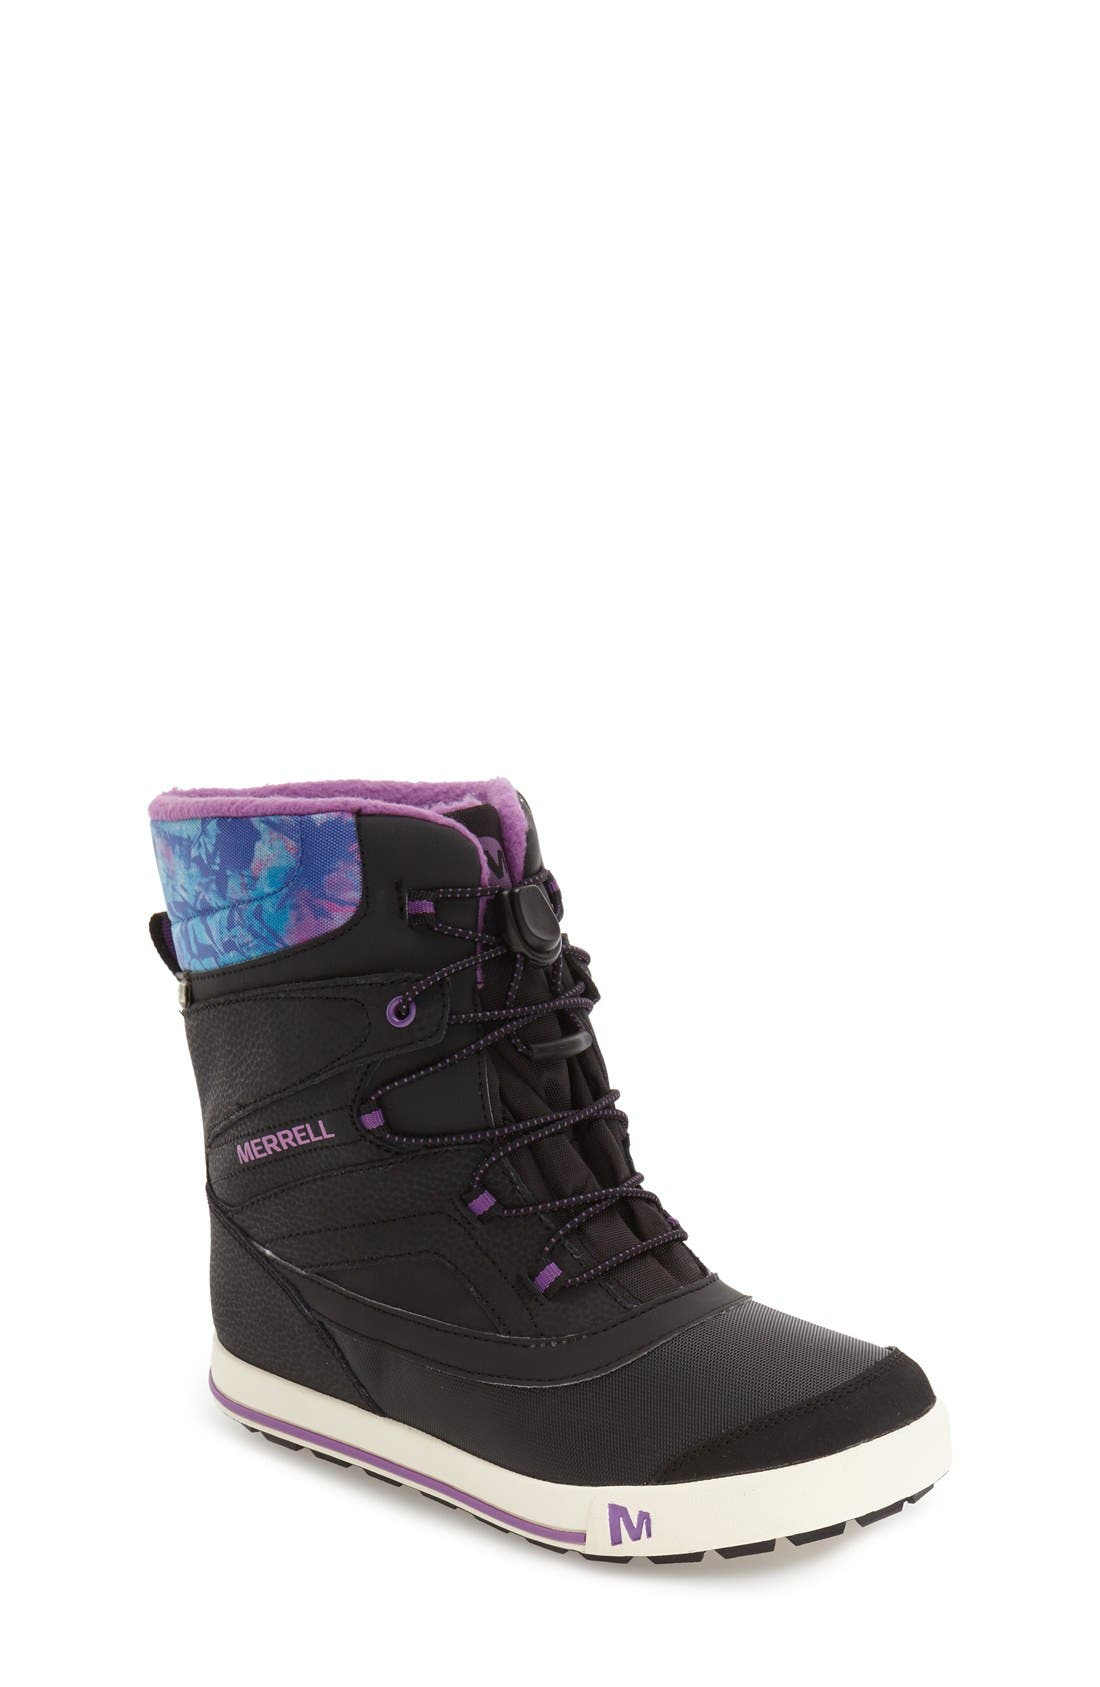 MERRELL,                             'Snow Bank 2' Waterproof Boot,                             Main thumbnail 1, color,                             BLACK/ PRINT/ BERRY LEATHER